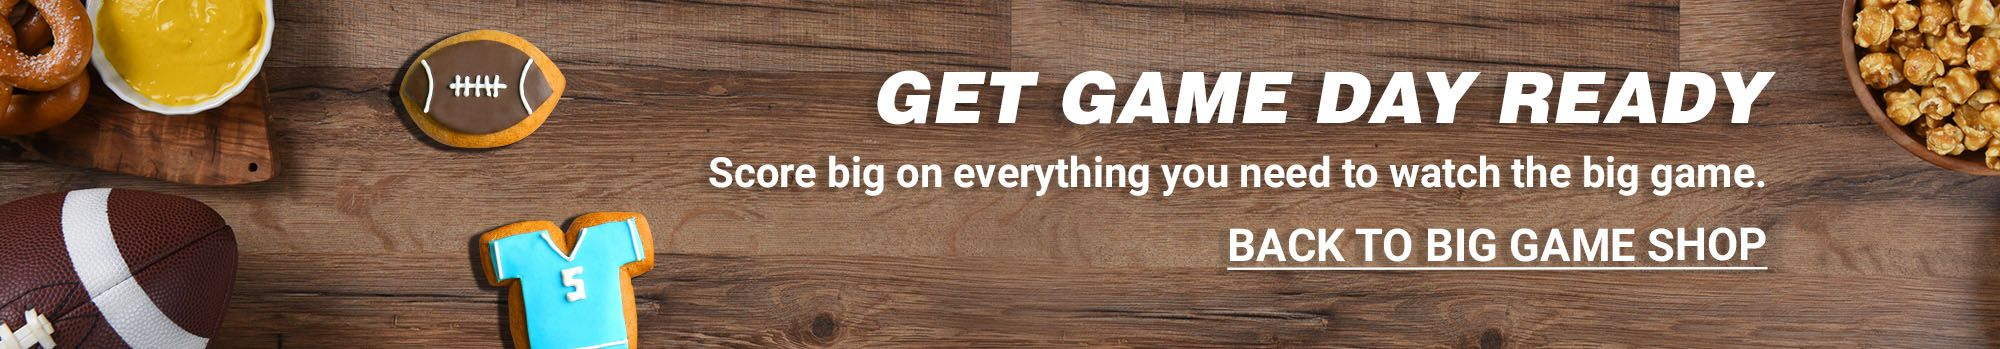 Get Game day ready. Score big on everything you need to watch the big game. Click to go back to Big Game Shop